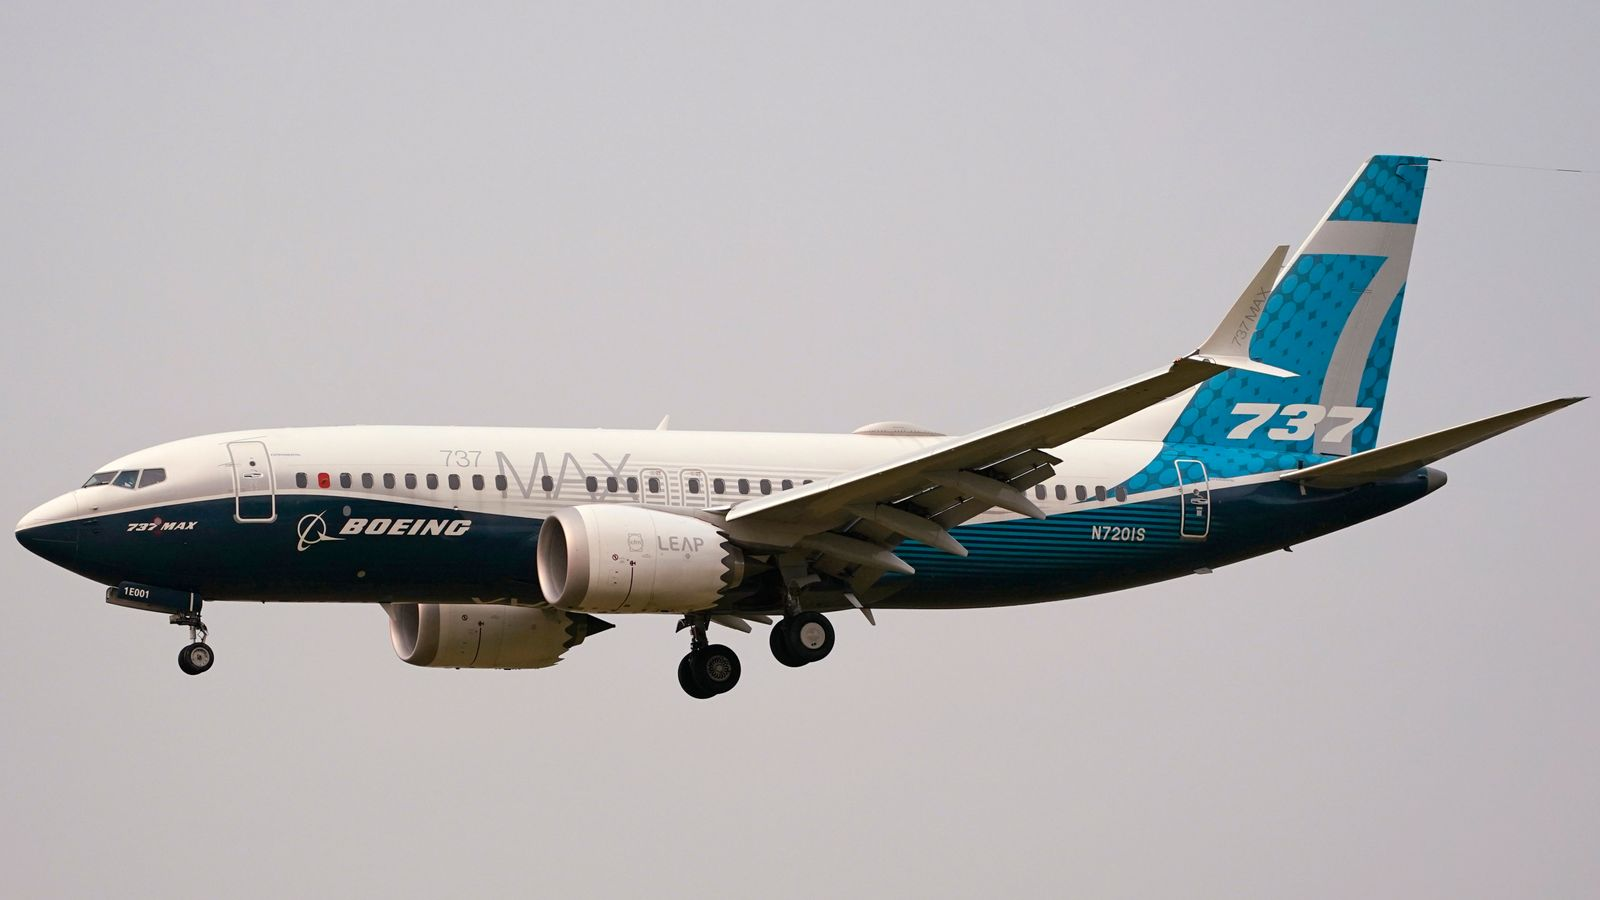 Boeing board to face investor lawsuit over 737 MAX oversight 'lies' before crashes